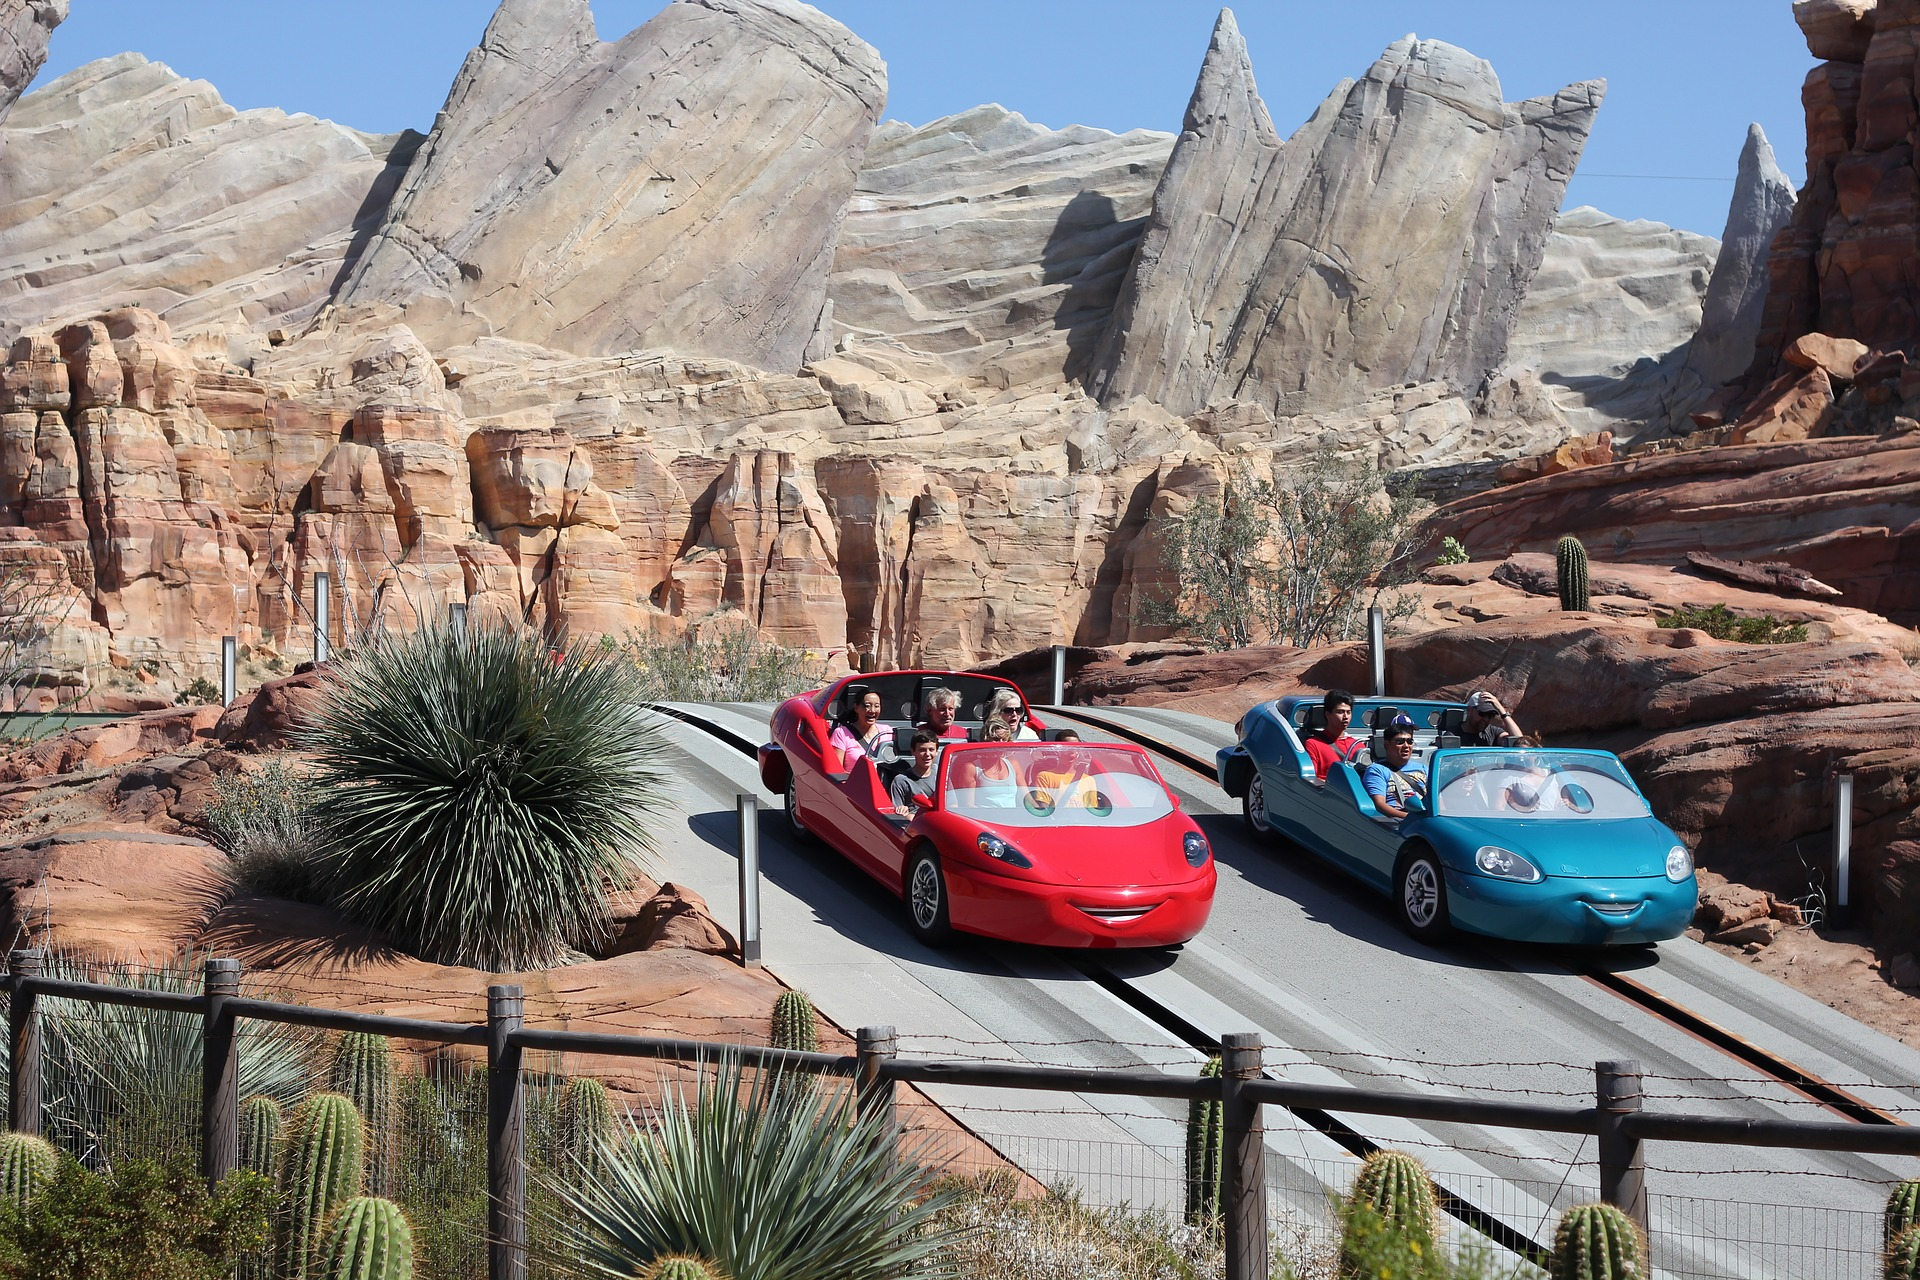 Could Radiator Springs Racers be one of the scariest rides at Disneyland?